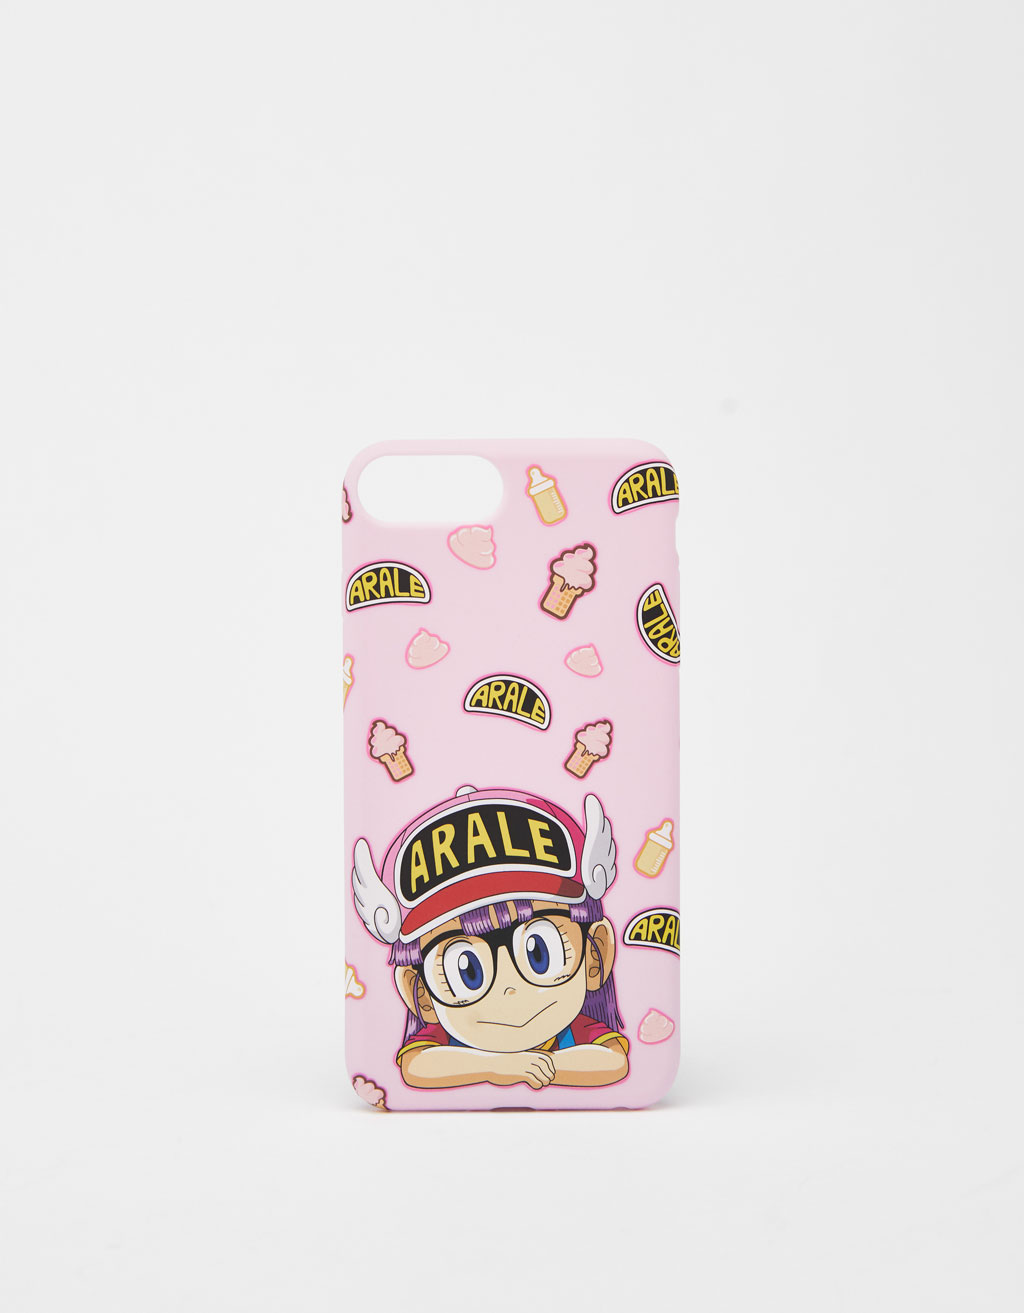 Carcassa Arale iPhone 6 plus/7 plus/8 plus